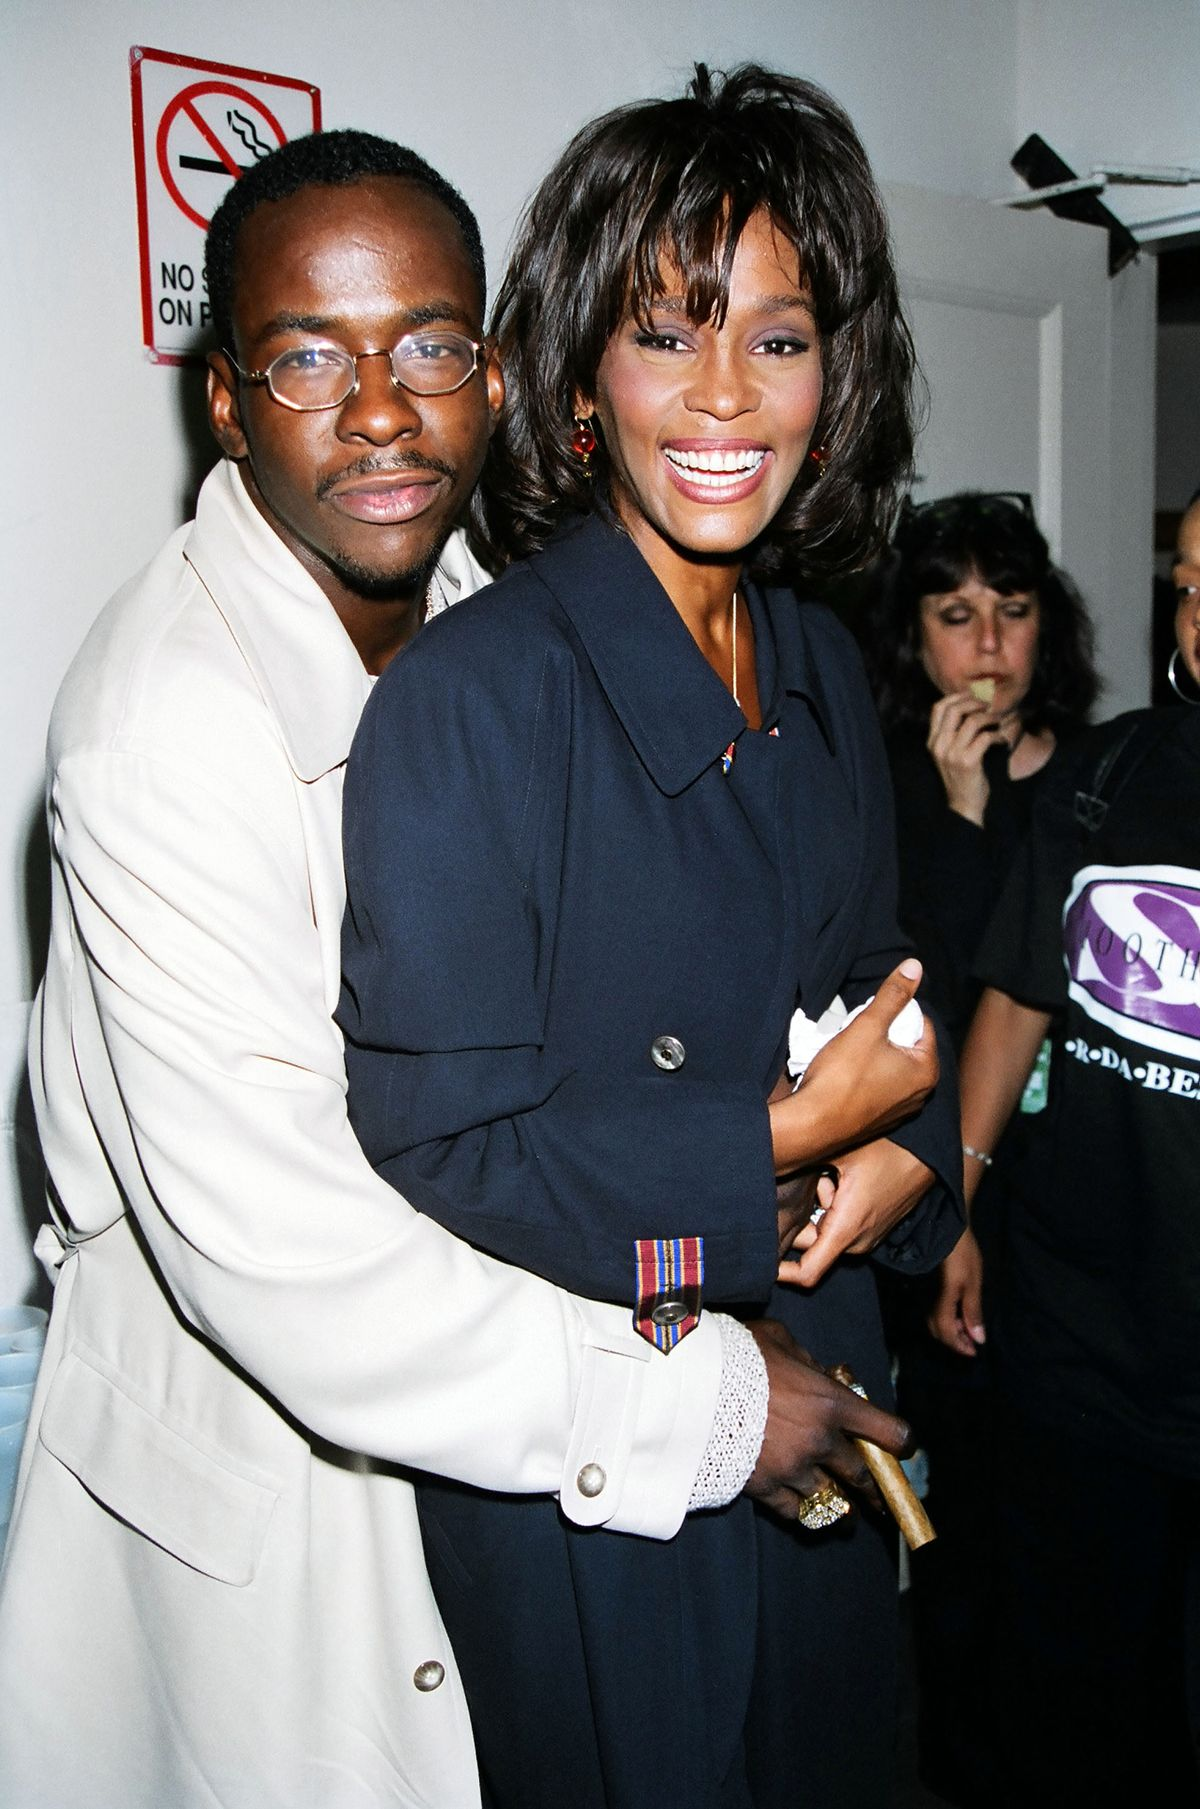 Bobby Brown & Whitney Houston during 1995 MTV Video Music Awards Show at Radio City Music Hall in New York City, New York, United States. (Photo by Jeff Kravitz/FilmMagic, Inc)